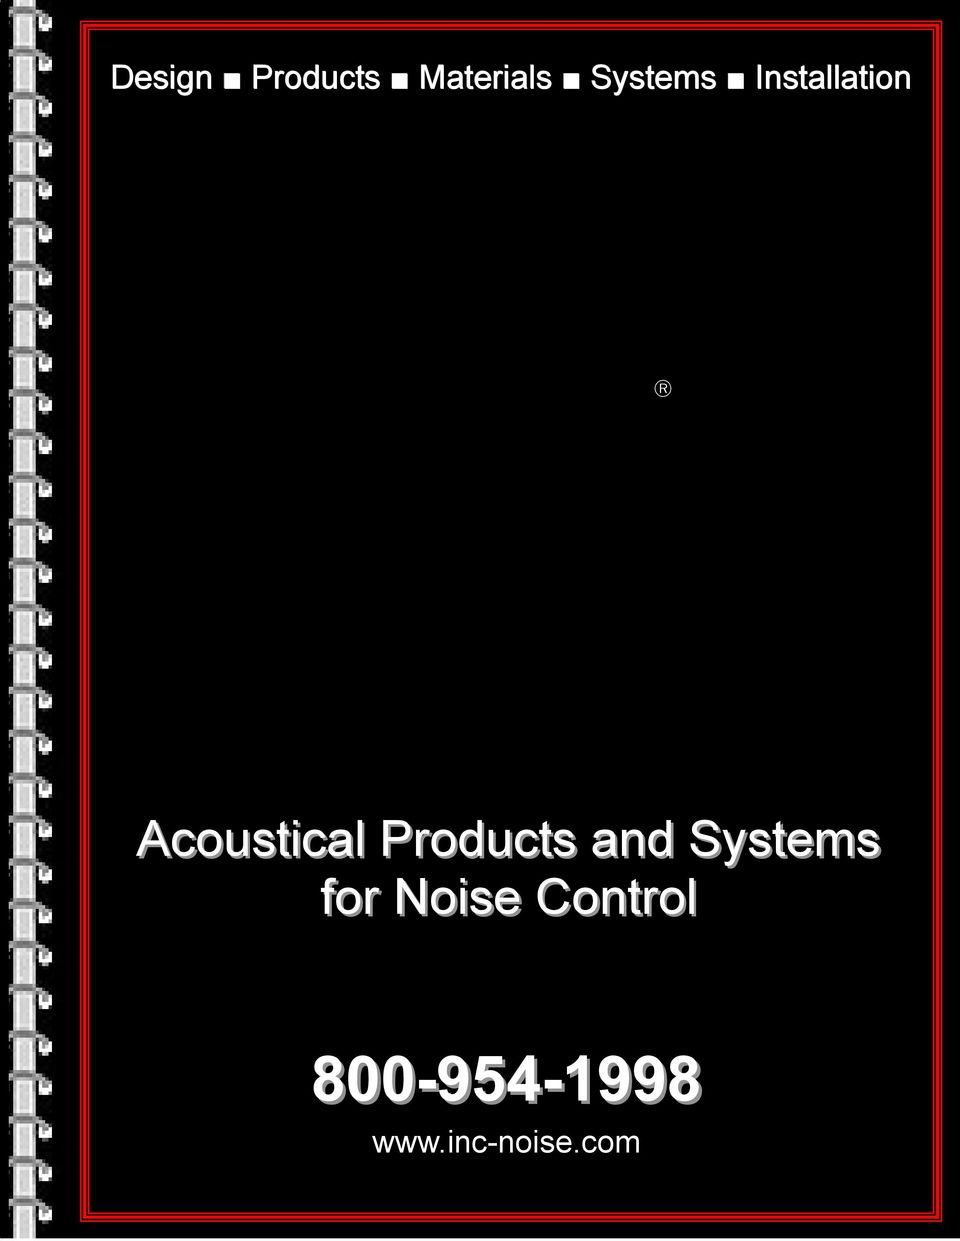 Products and Systems for Noise